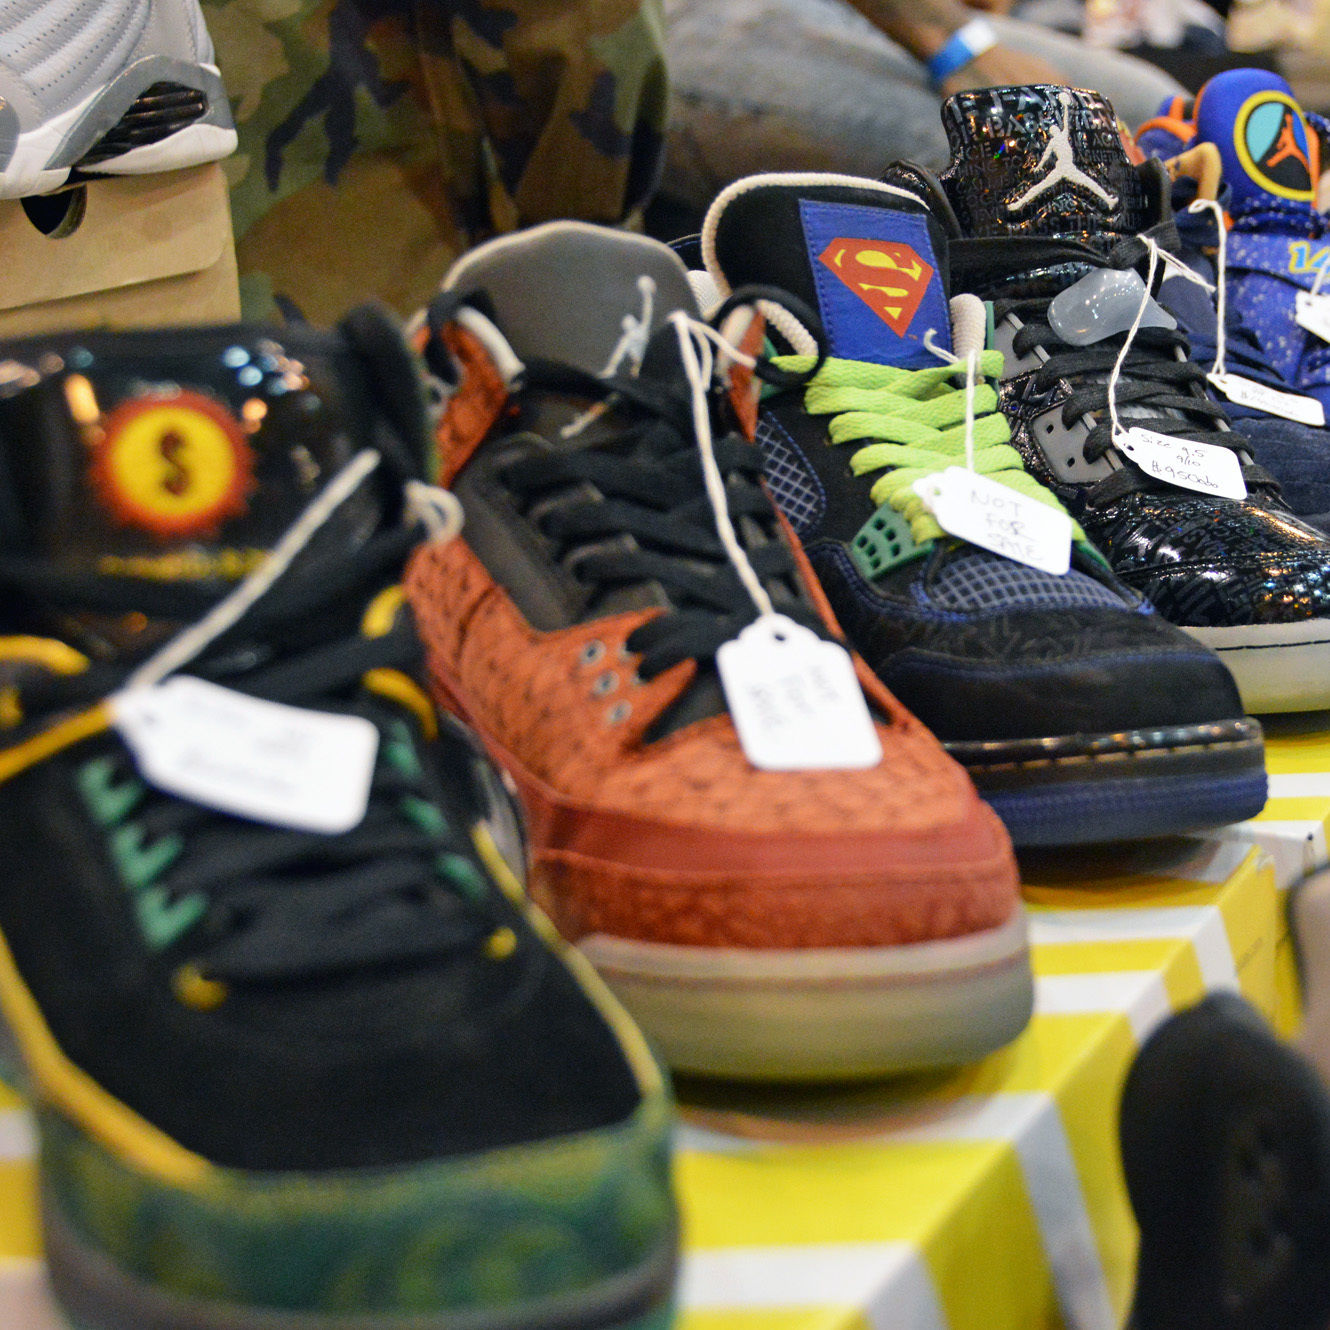 Dsc 7502 h town sneaker summit 2016 photo by ellie sharp ryanir